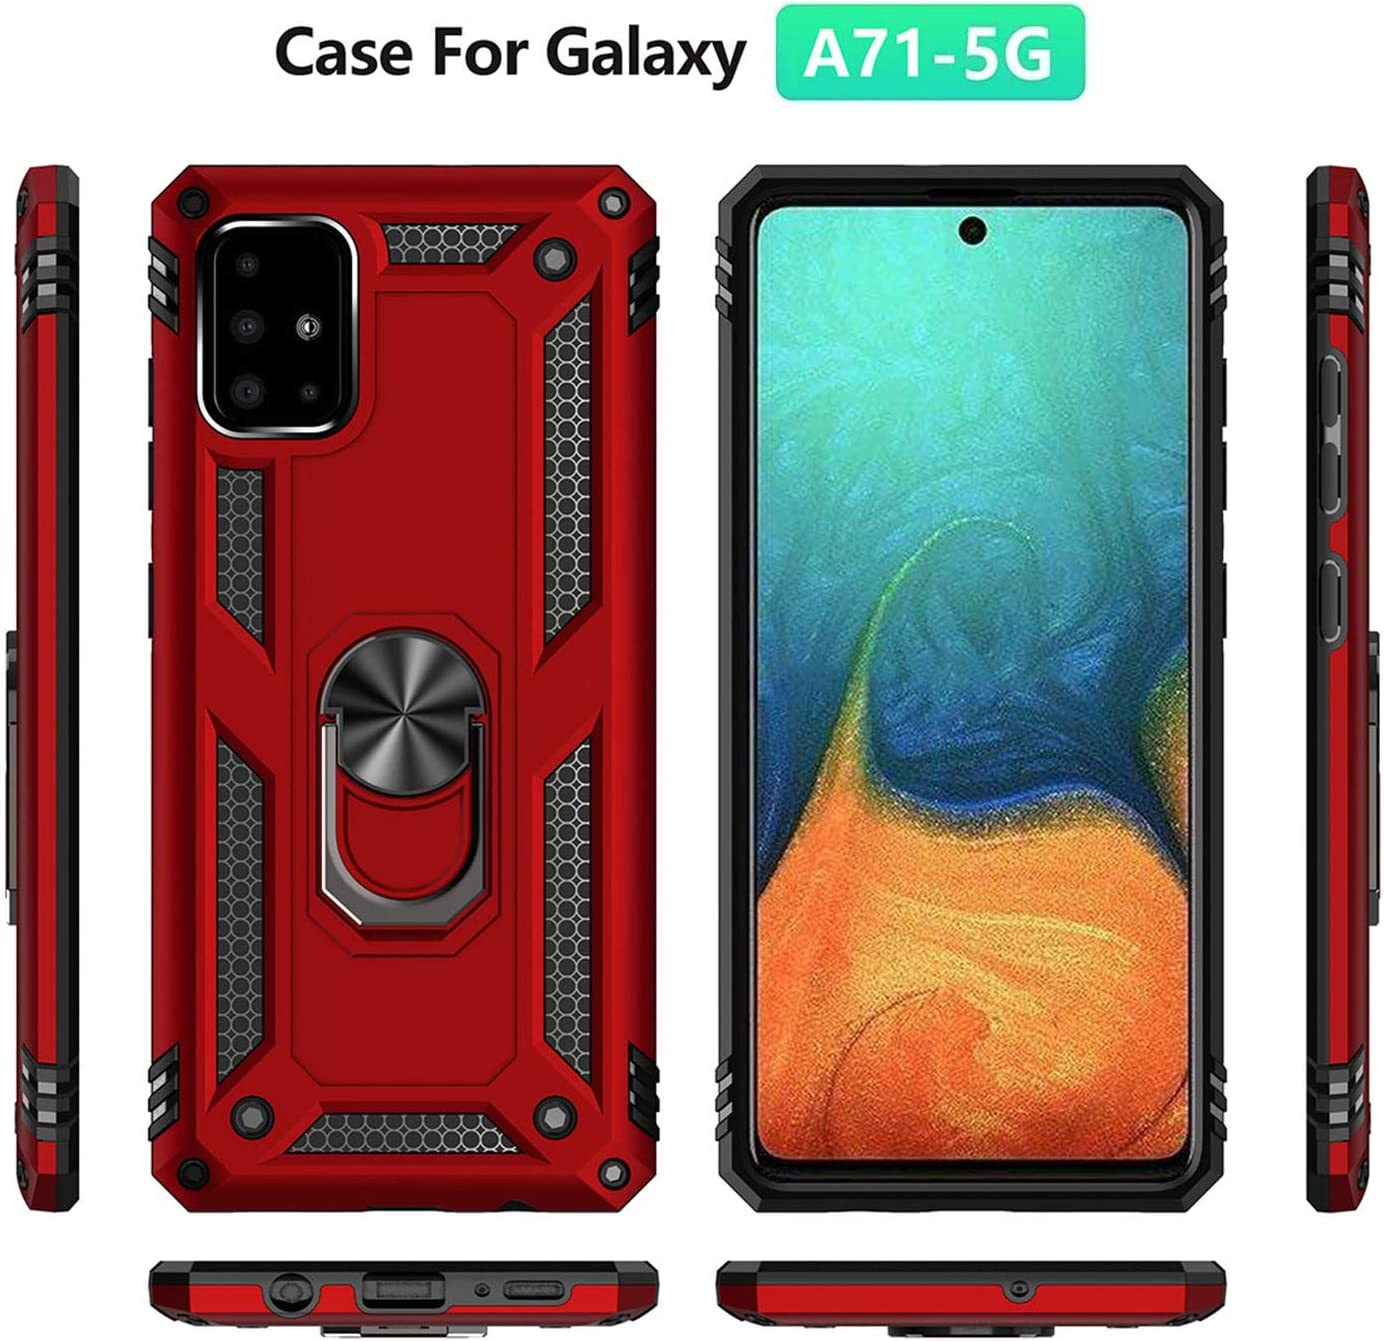 Blue A71 5G Case Samsung Galaxy A71 5G Cover 360 Degree Rotatable Ring Stand and Ring Holder Kickstand Fit Magnetic Car Mount